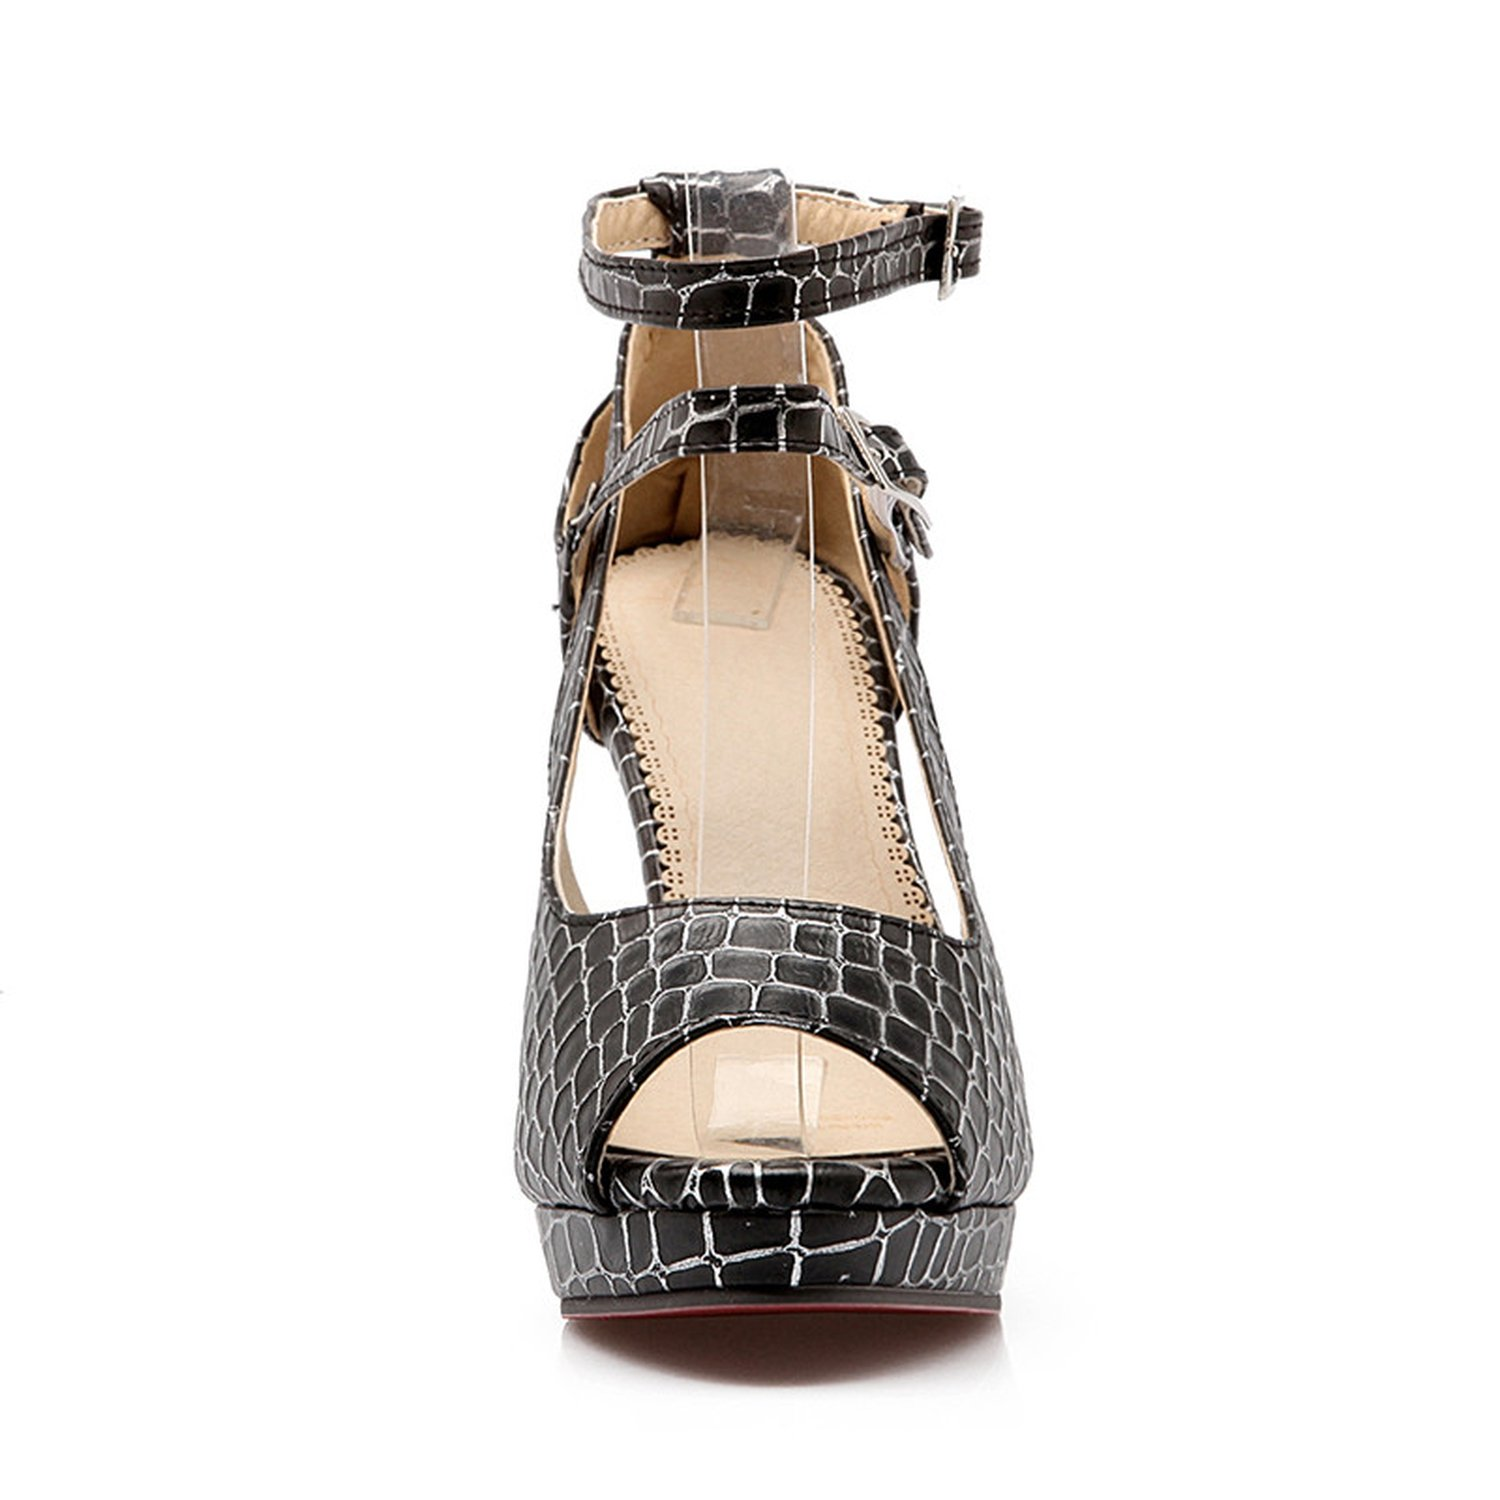 Collocation-Online Womens Gladiator Ankle Strap High Heels Open Toe Platform Party Wedding Office Sandals